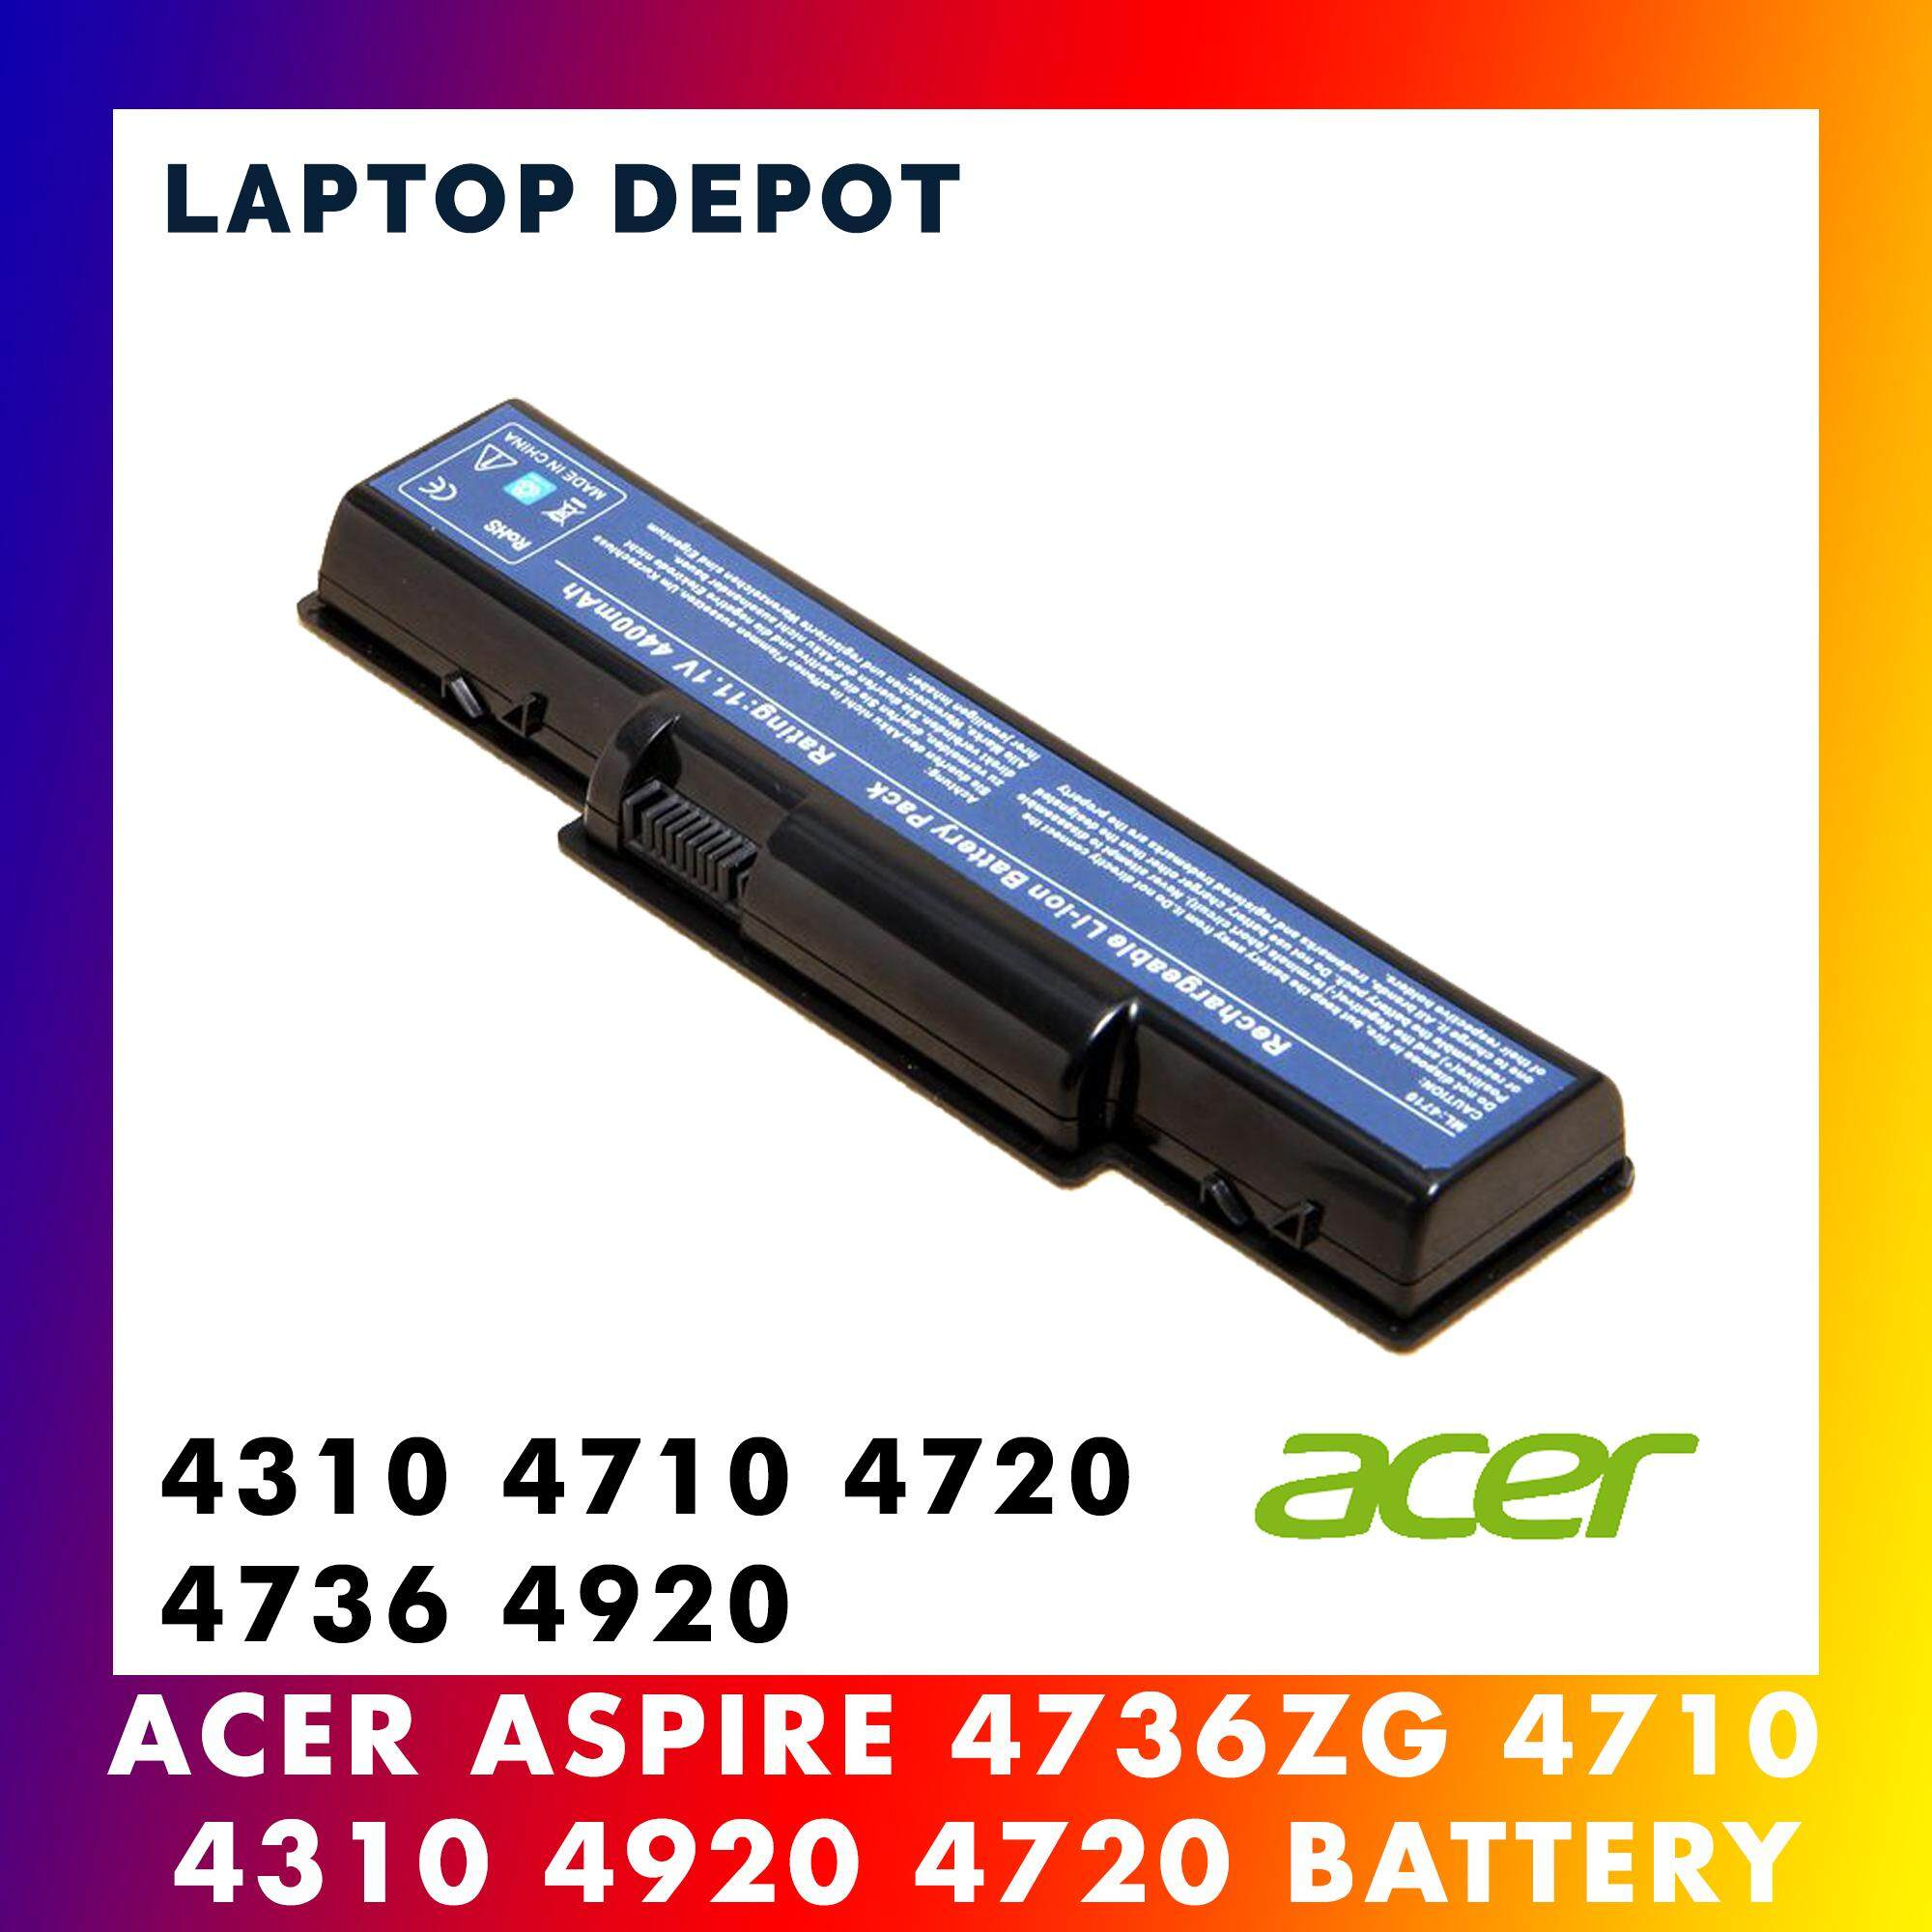 Acer Aspire 4710 4730 4732 4740 4736 4737 4935 4520 4720 4920 Laptop Battery Malaysia